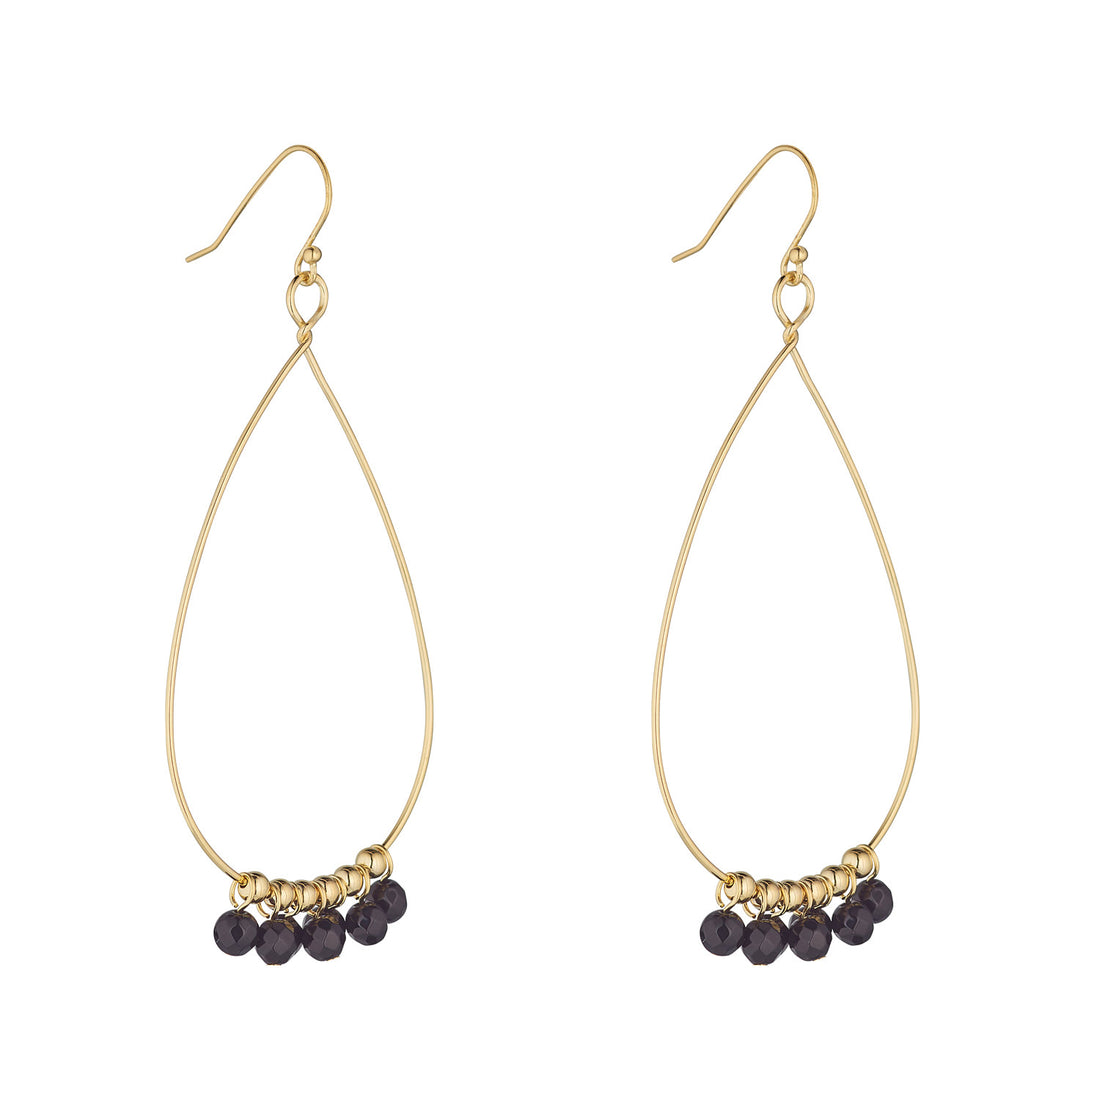 LOULERIE BLACK GEMSTONE TEARDROP EARRINGS